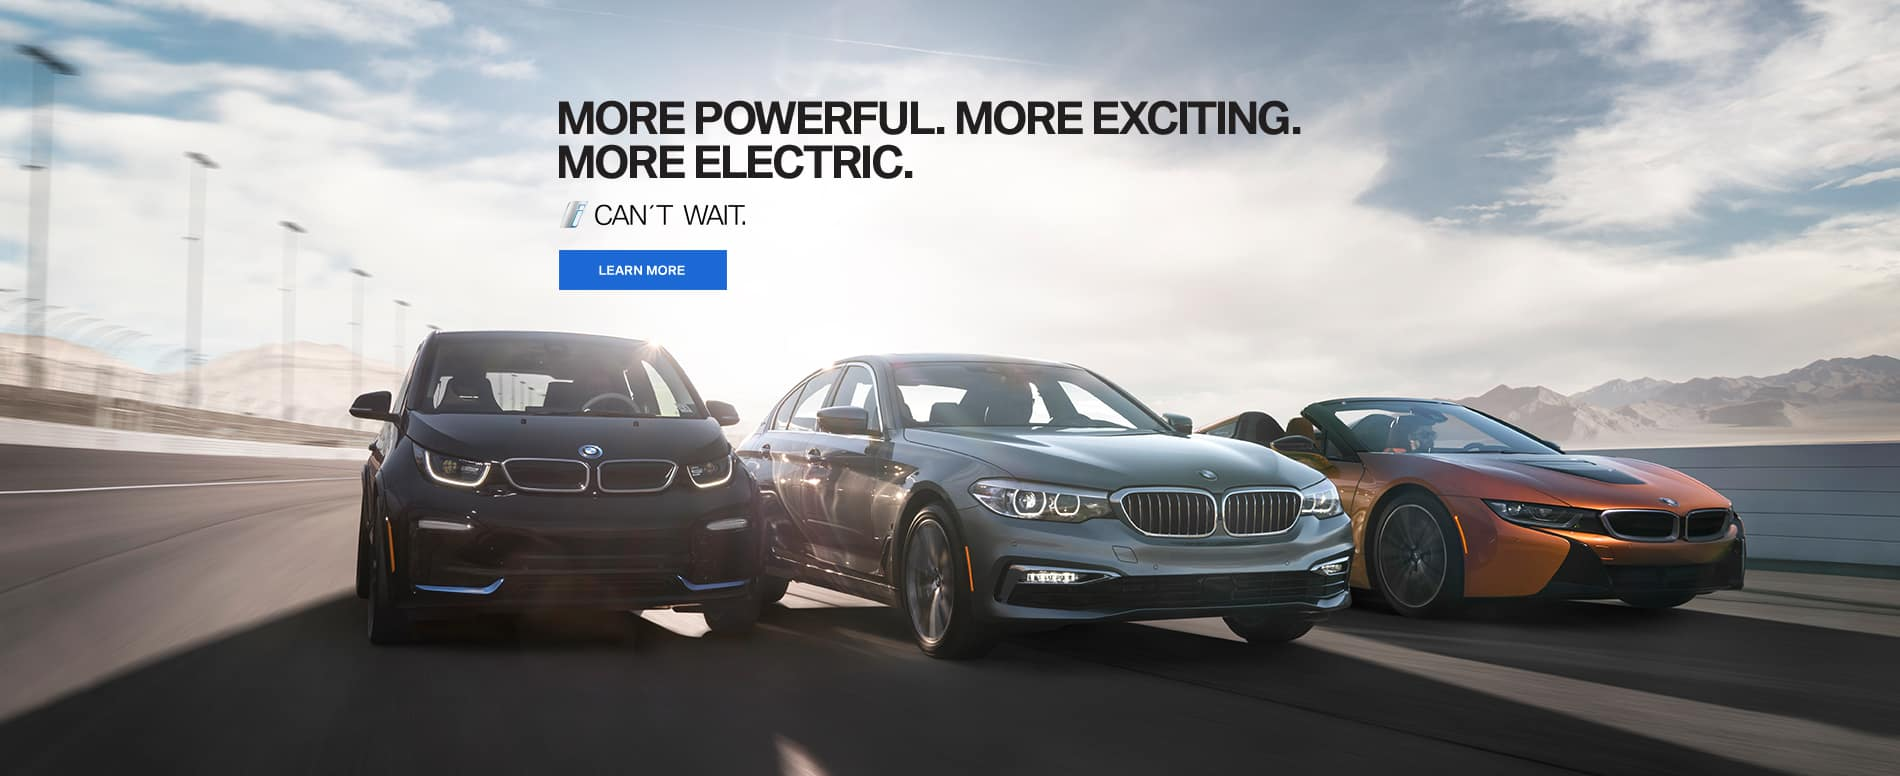 Tulley BMW Manchester >> Tulley BMW of Manchester | Pre-Owned BMW Dealer in Manchester, NH